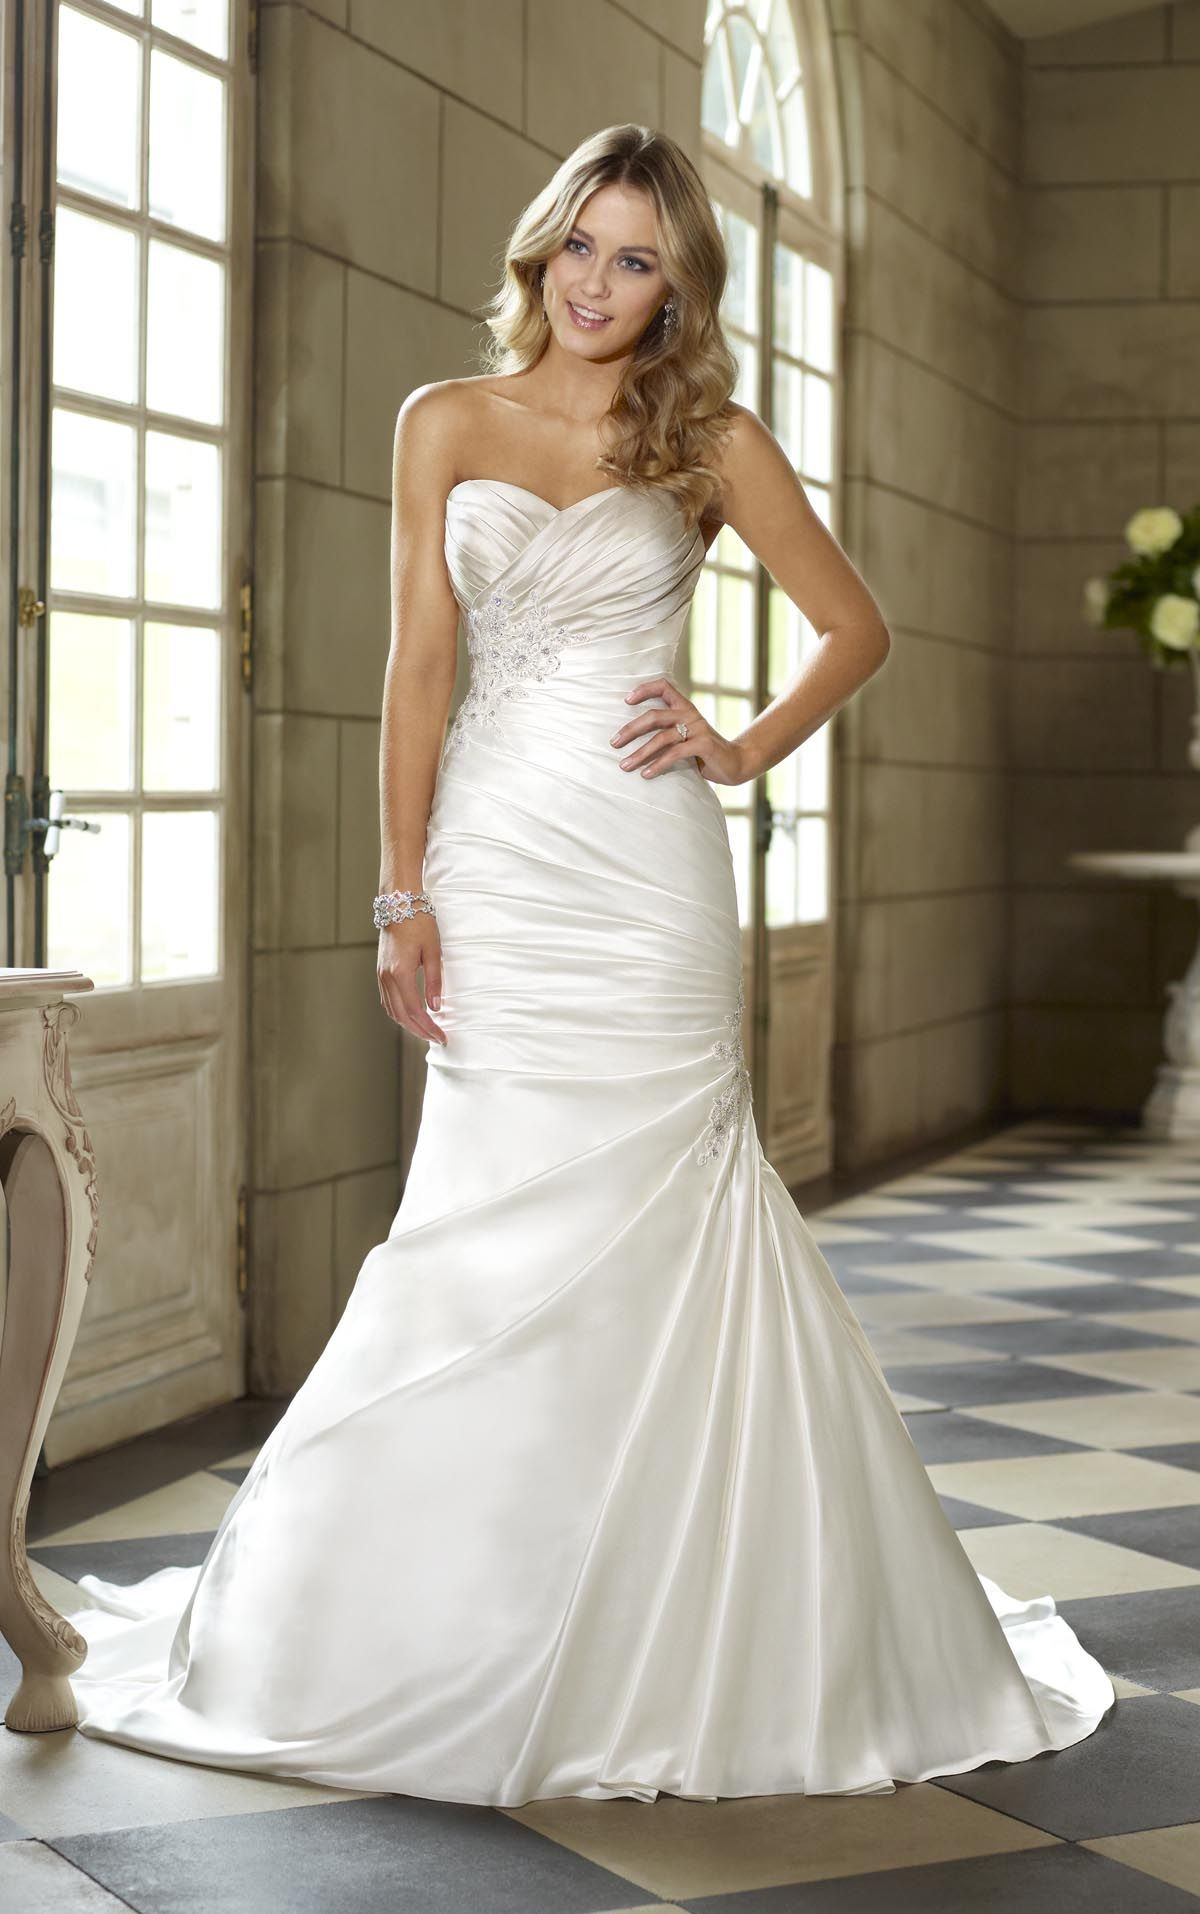 Wedding dress with side ruching | WEDDING DRESSES | Pinterest ...